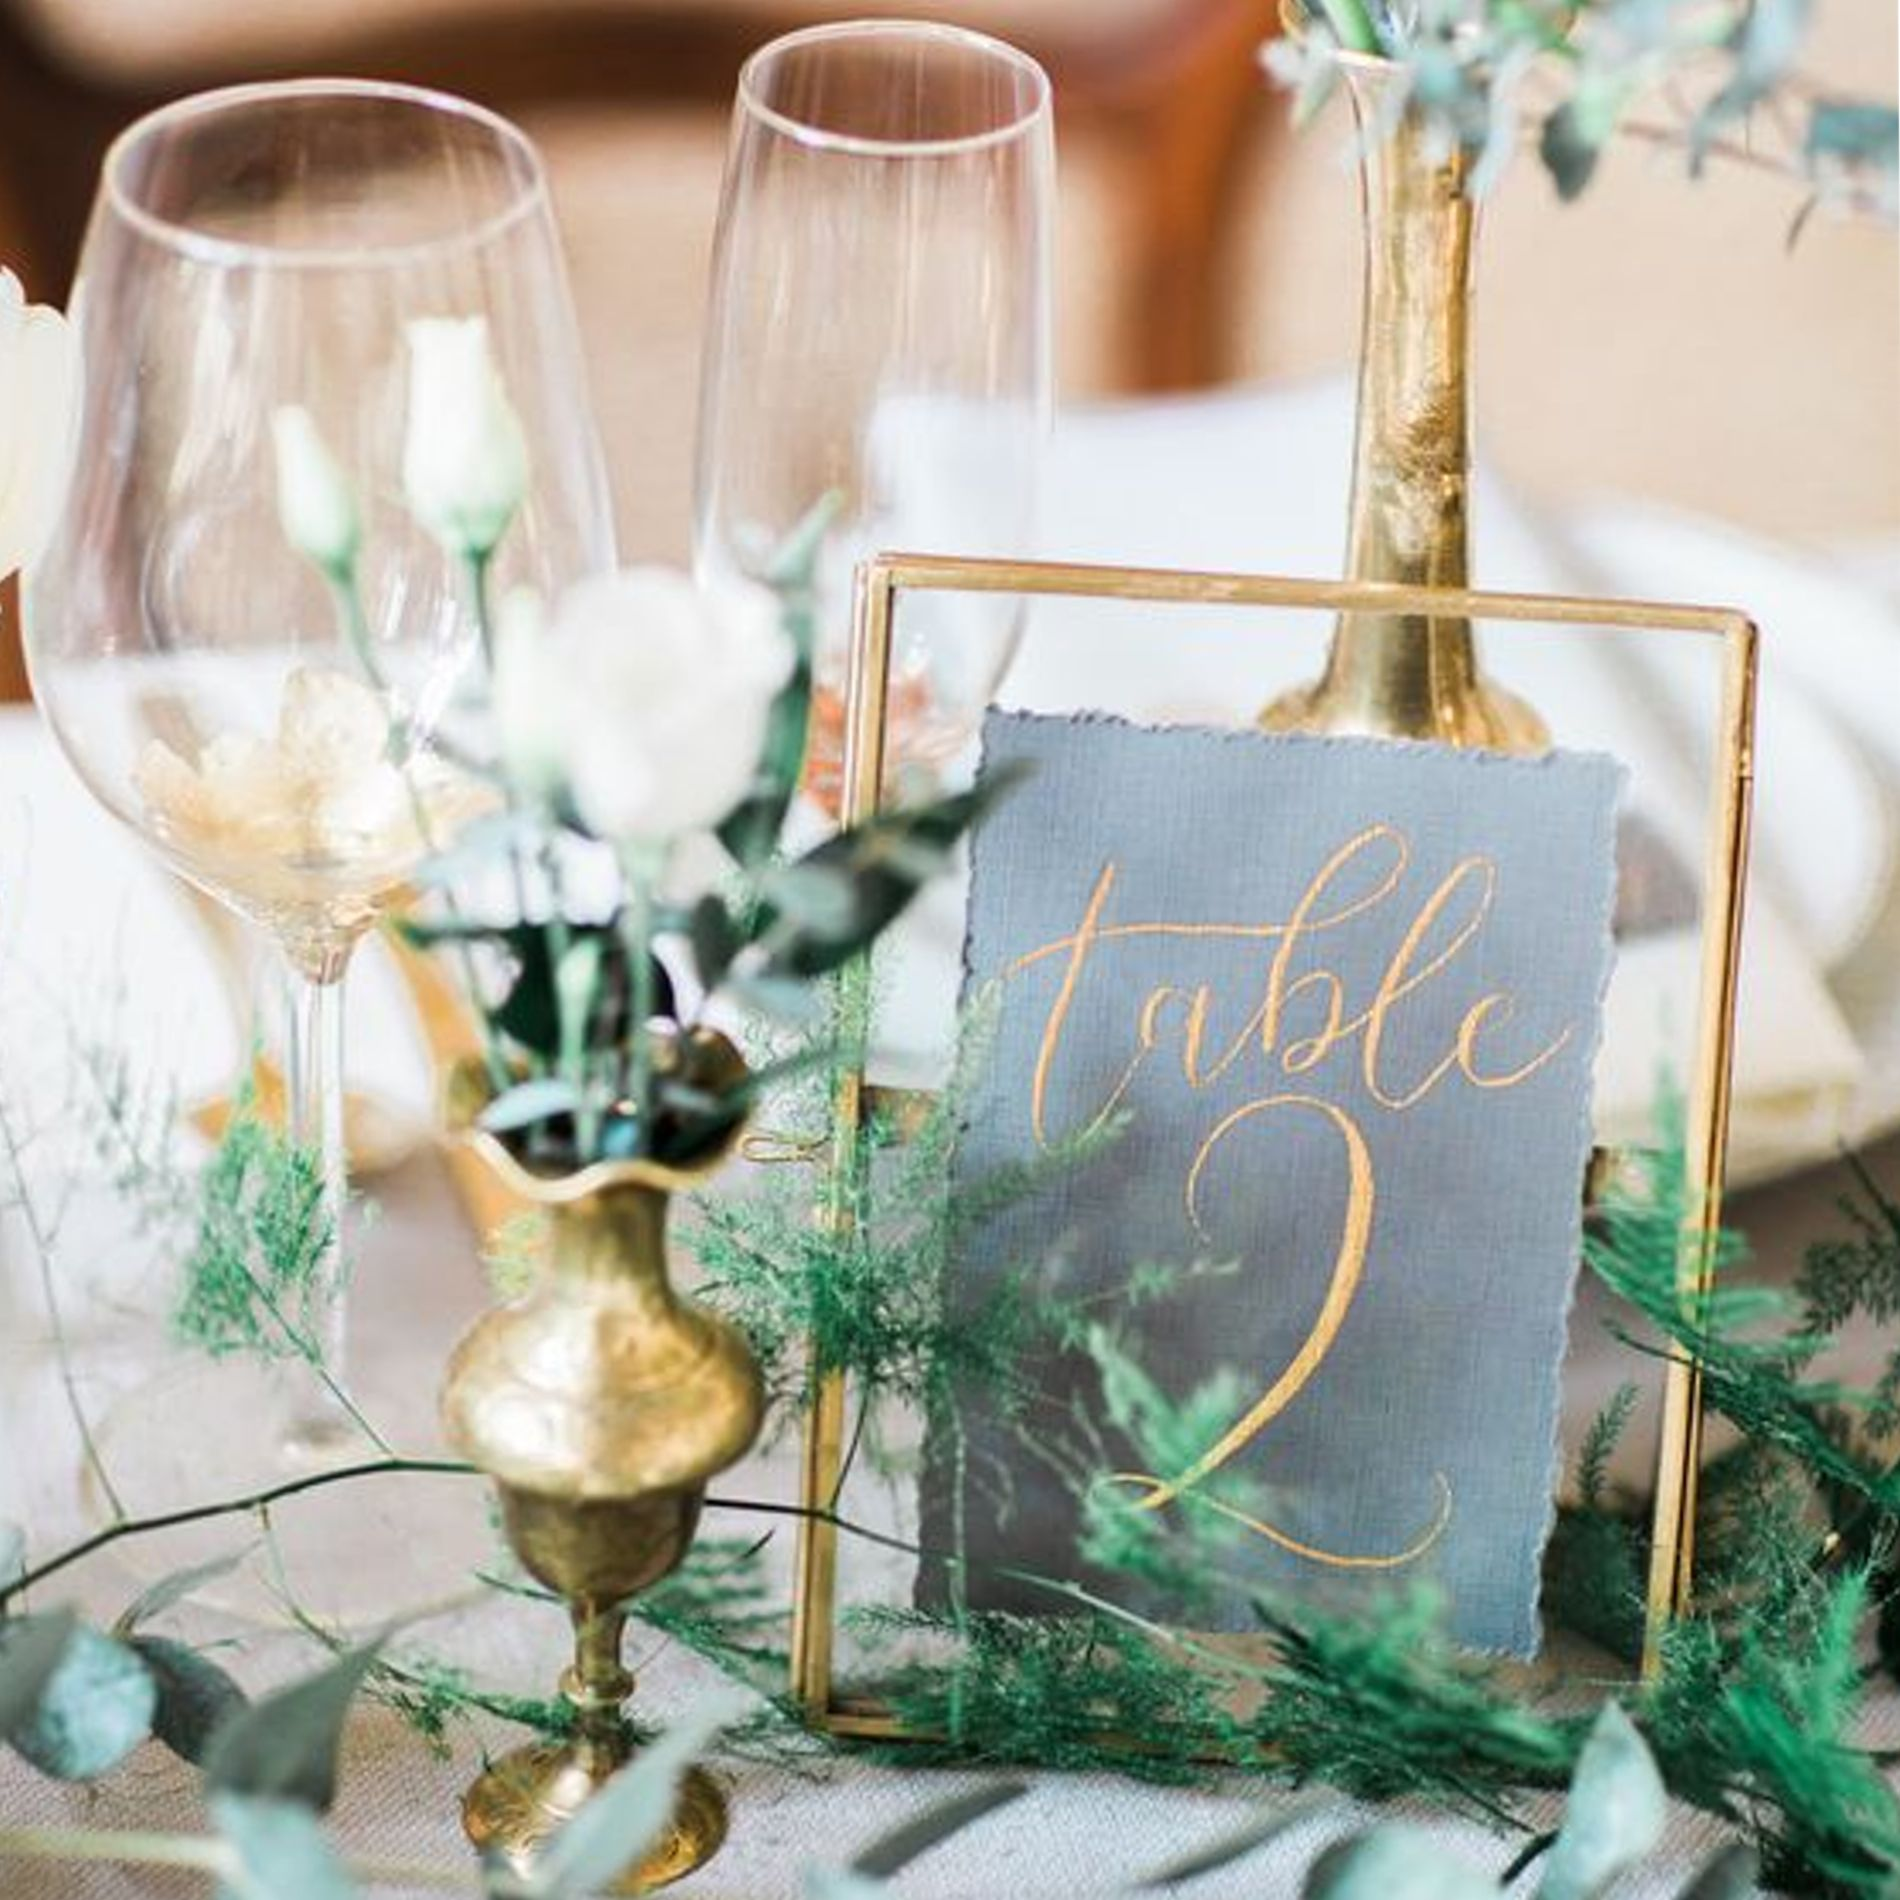 Rustic Door Wedding Ideas: Rustic Vintage Metal Gold See-through Glass Picture Frame